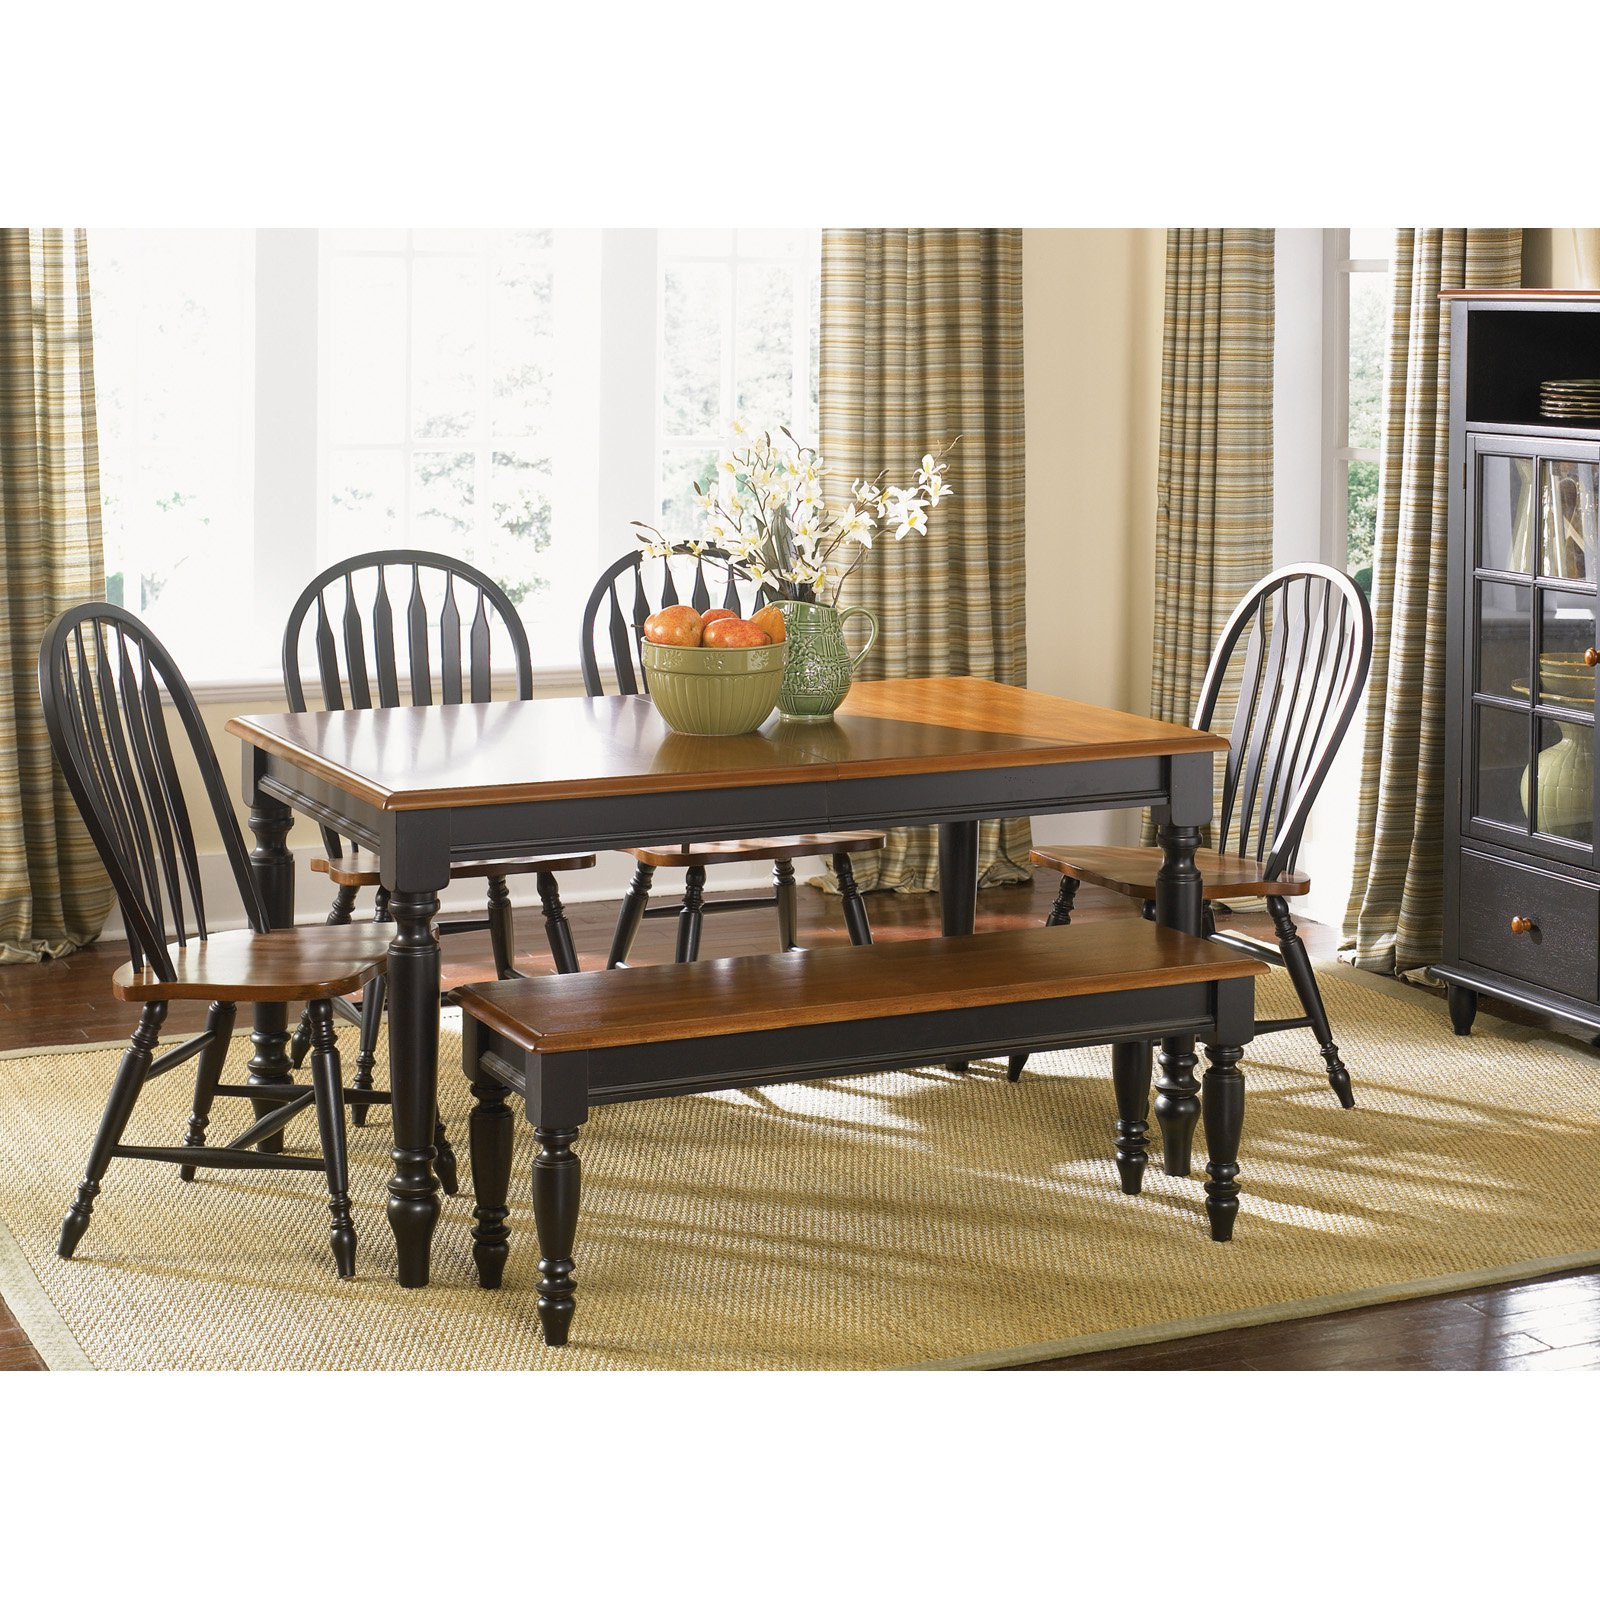 Best ideas about Country Dining Table . Save or Pin Liberty Furniture Low Country Black Rectangle Leg Dining Now.